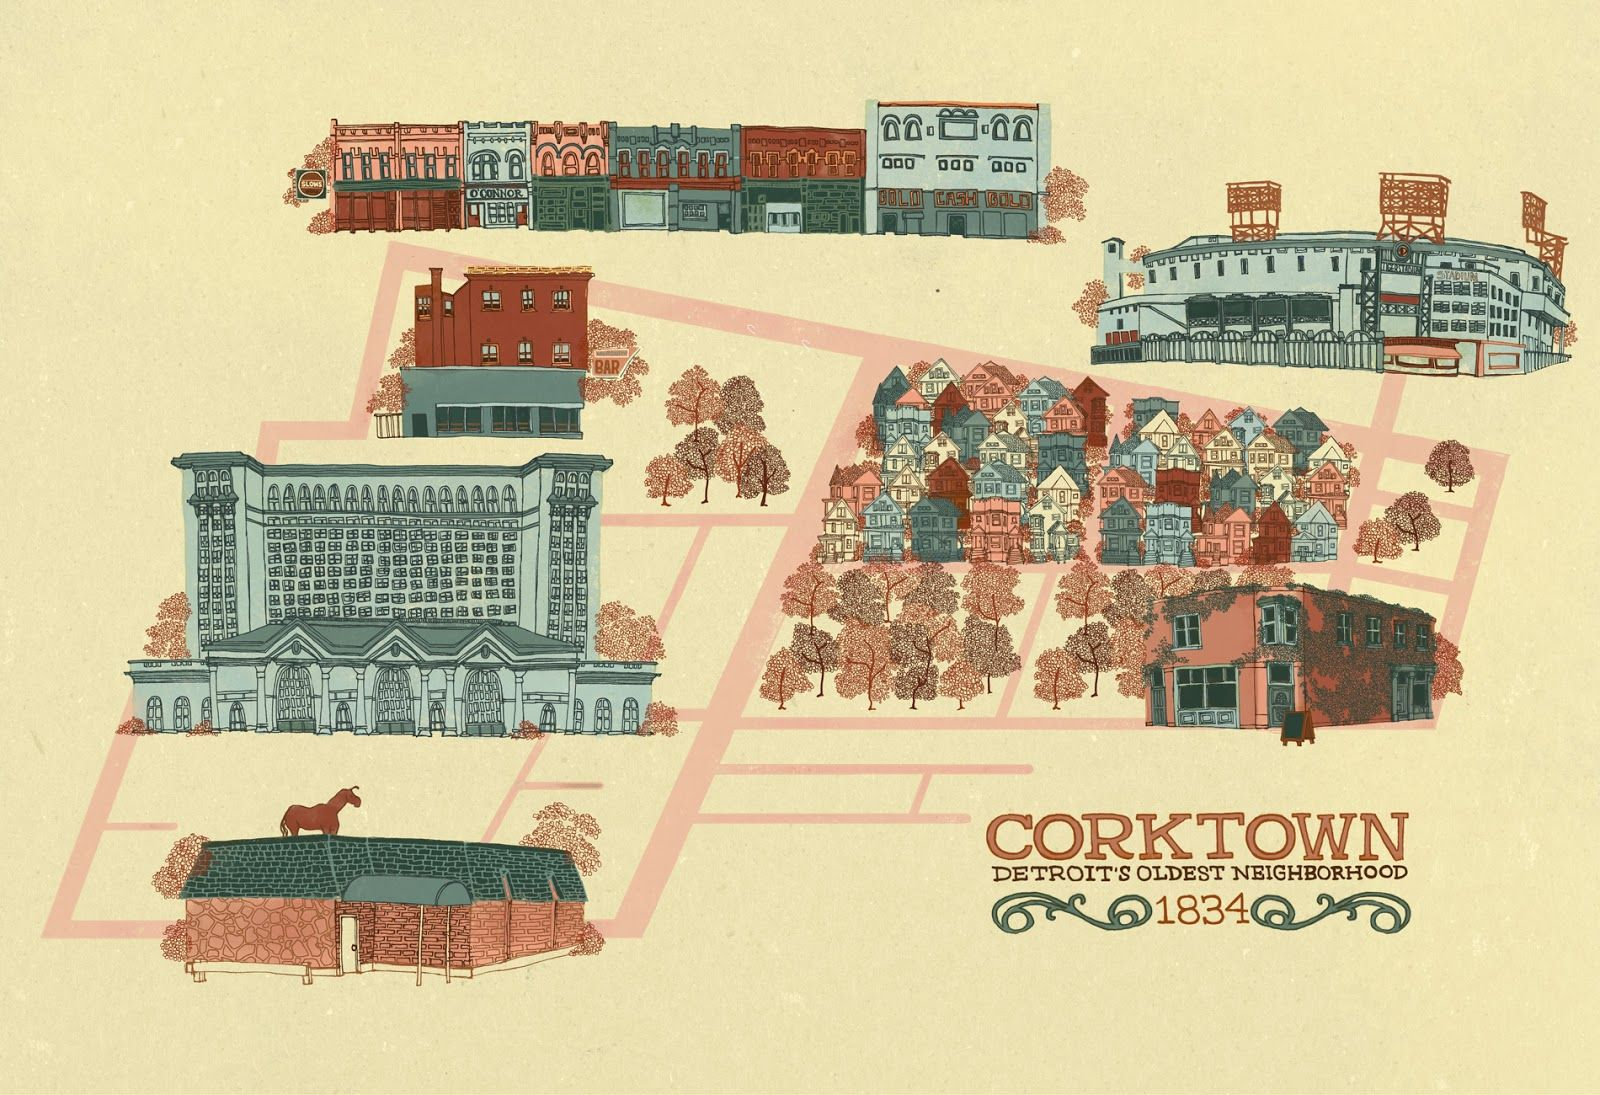 map of corktown detroit Corktown Map Corktown Detroit Neighborhoods Detroit map of corktown detroit